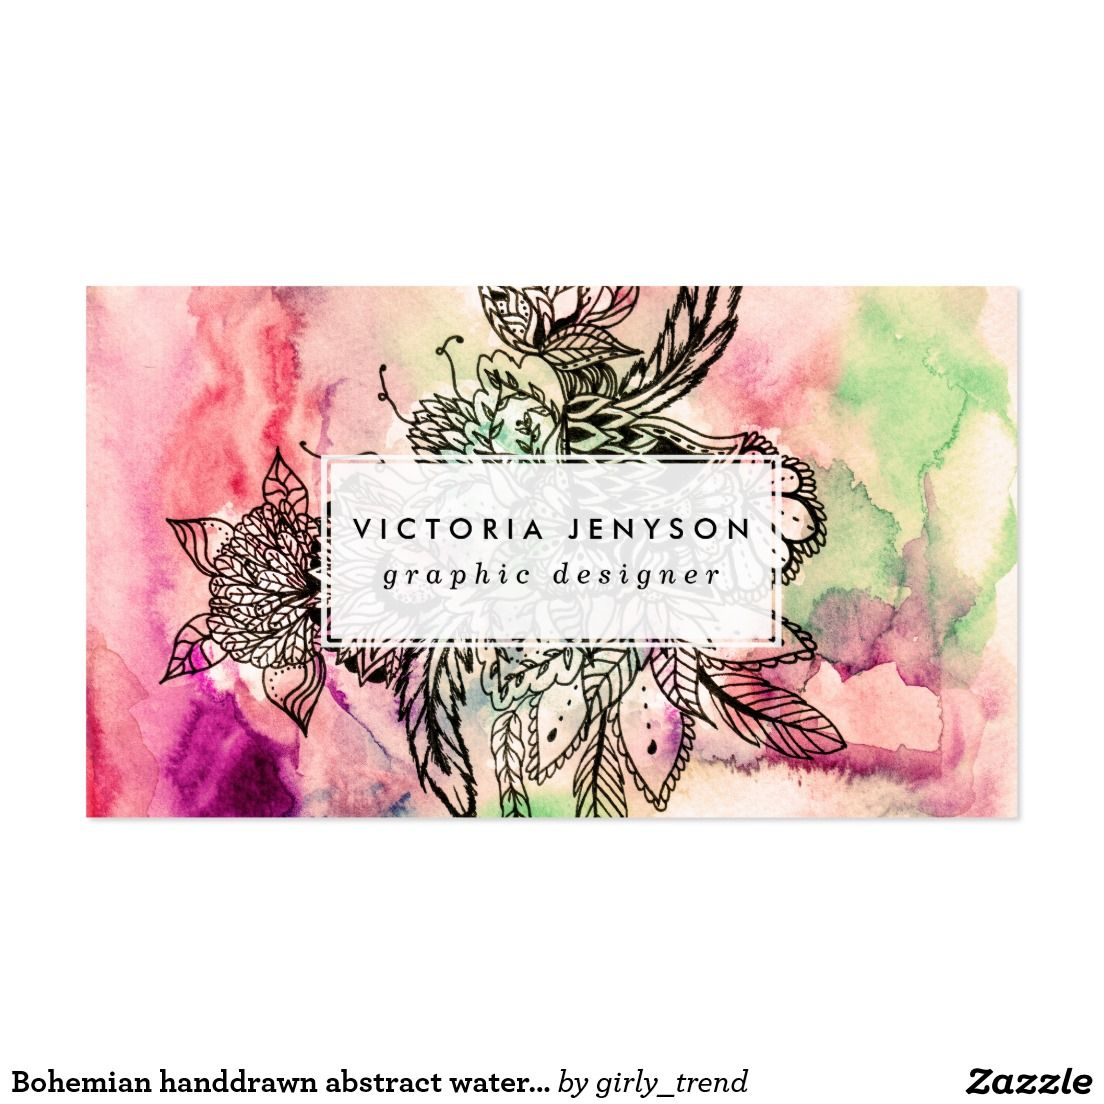 bohemian handdrawn abstract watercolor paint business card floral flowers watercolor boho girly